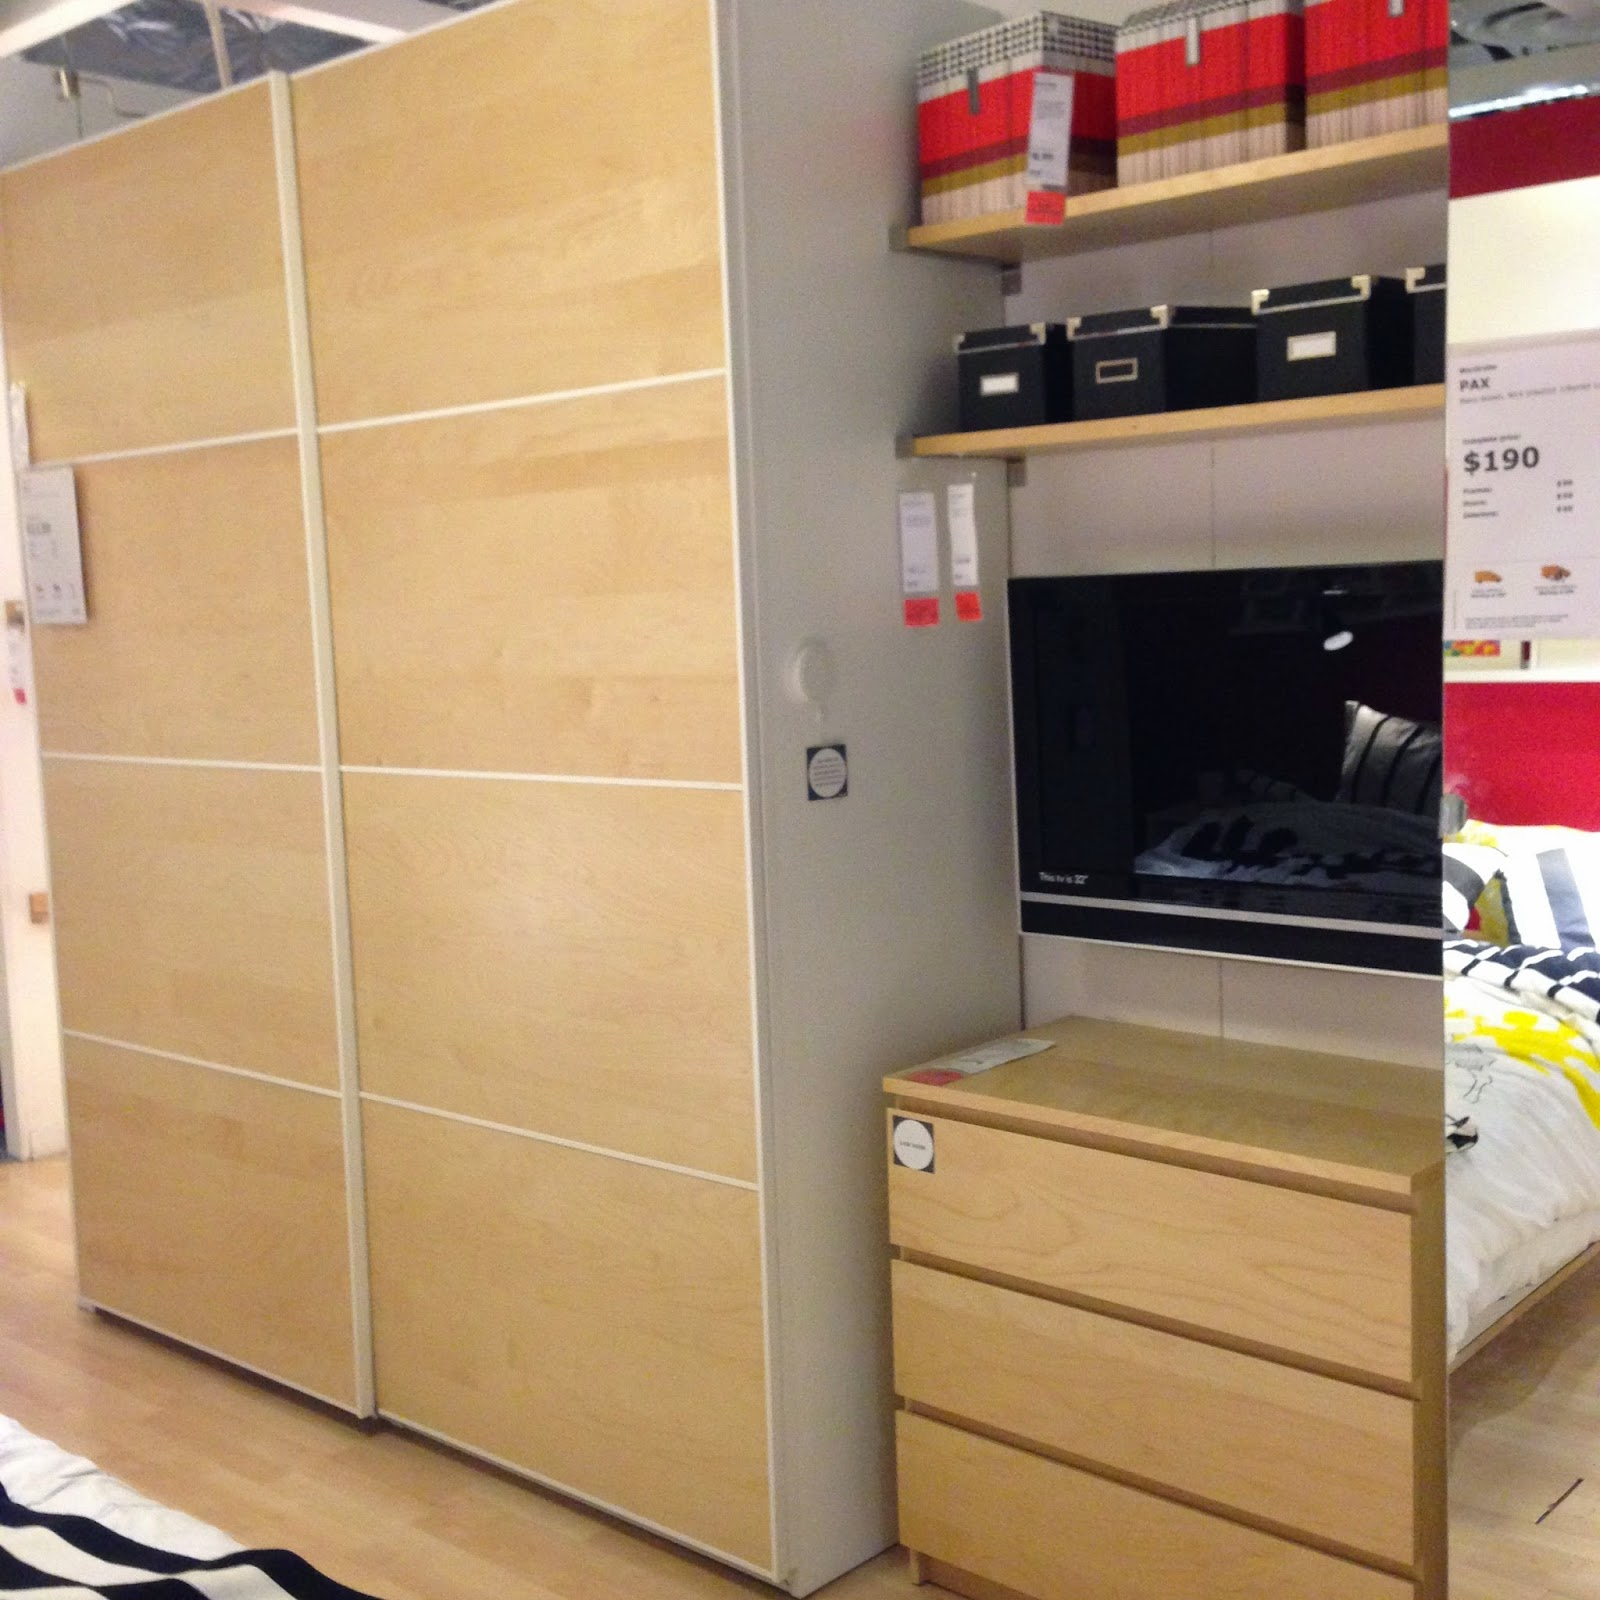 Ikea Kitchen Showroom: Design Dump: 3 Things You Can Learn From An Ikea Showroom